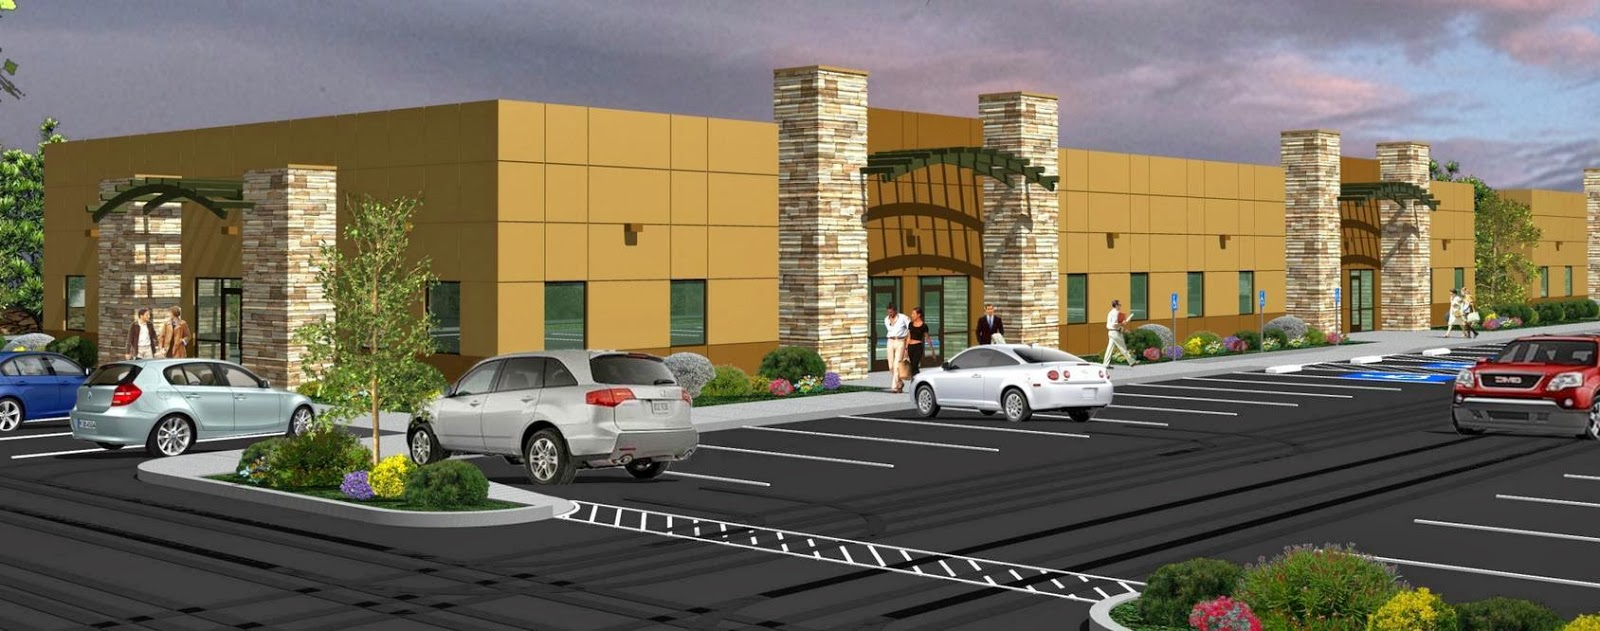 El paso development news office park expands in west el paso for New homes el paso tx west side